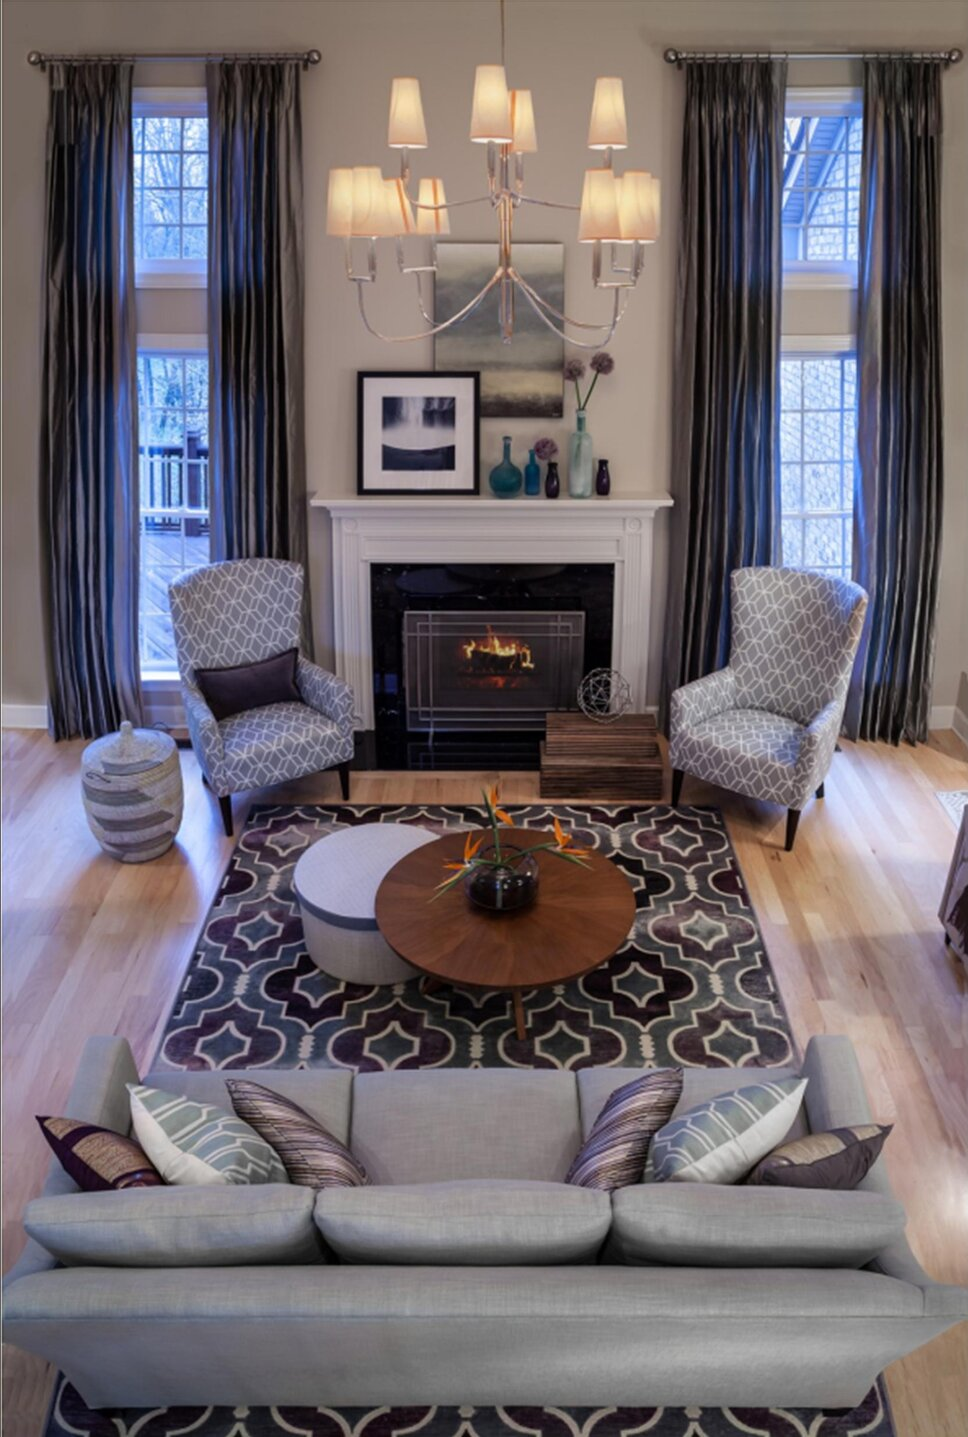 Designer Deidre Glore